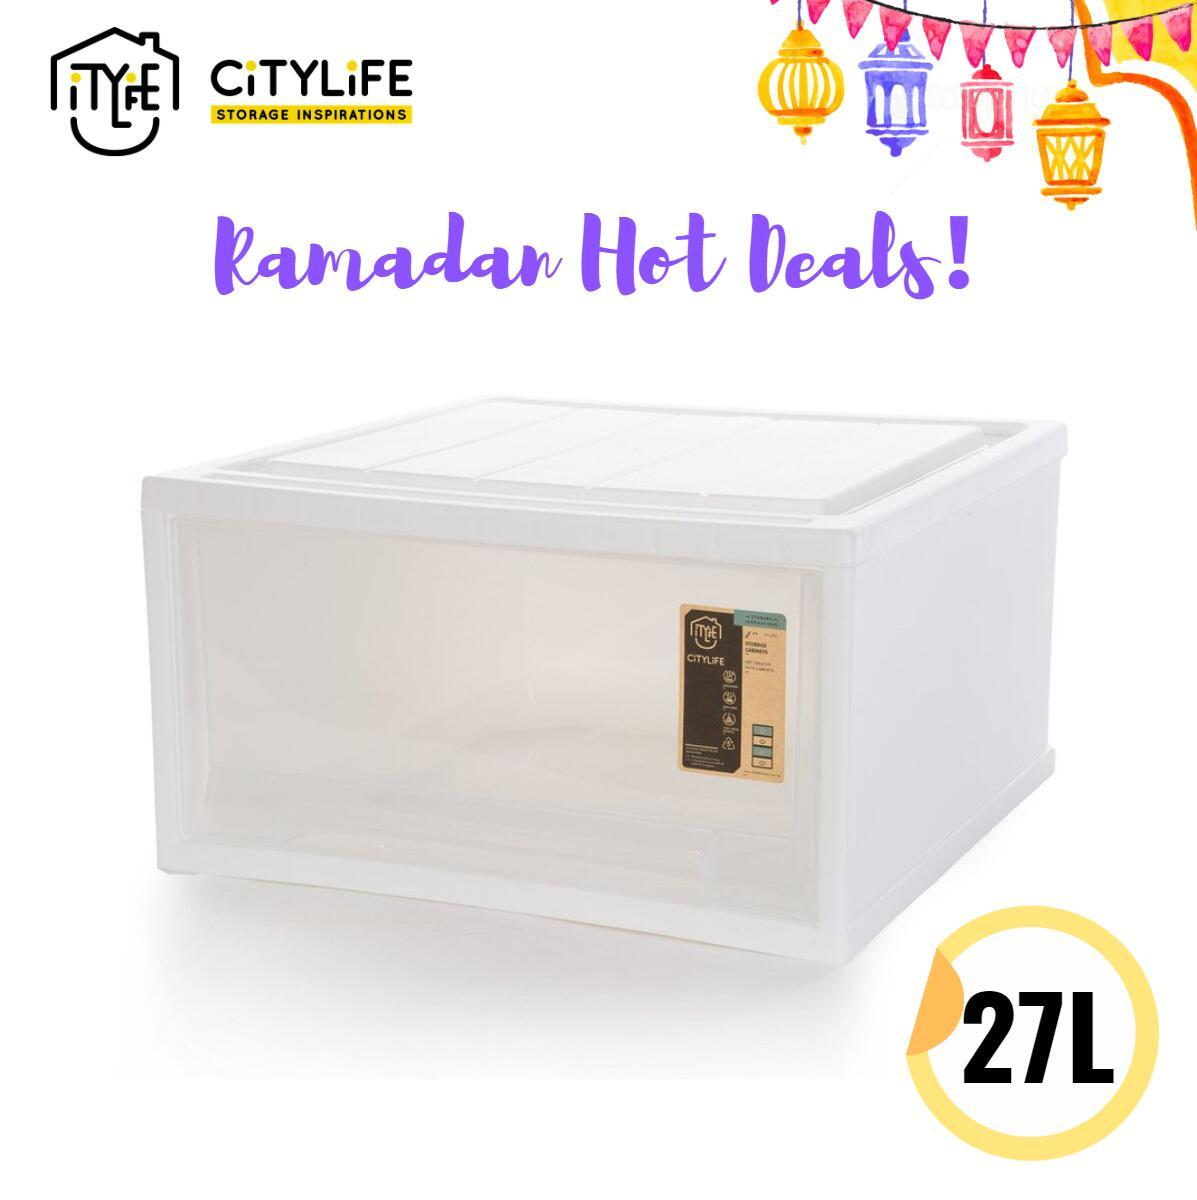 [BUNDLE of 3] Citylife Single Tier Drawer 35L/27L * Stackable and sturdy design !